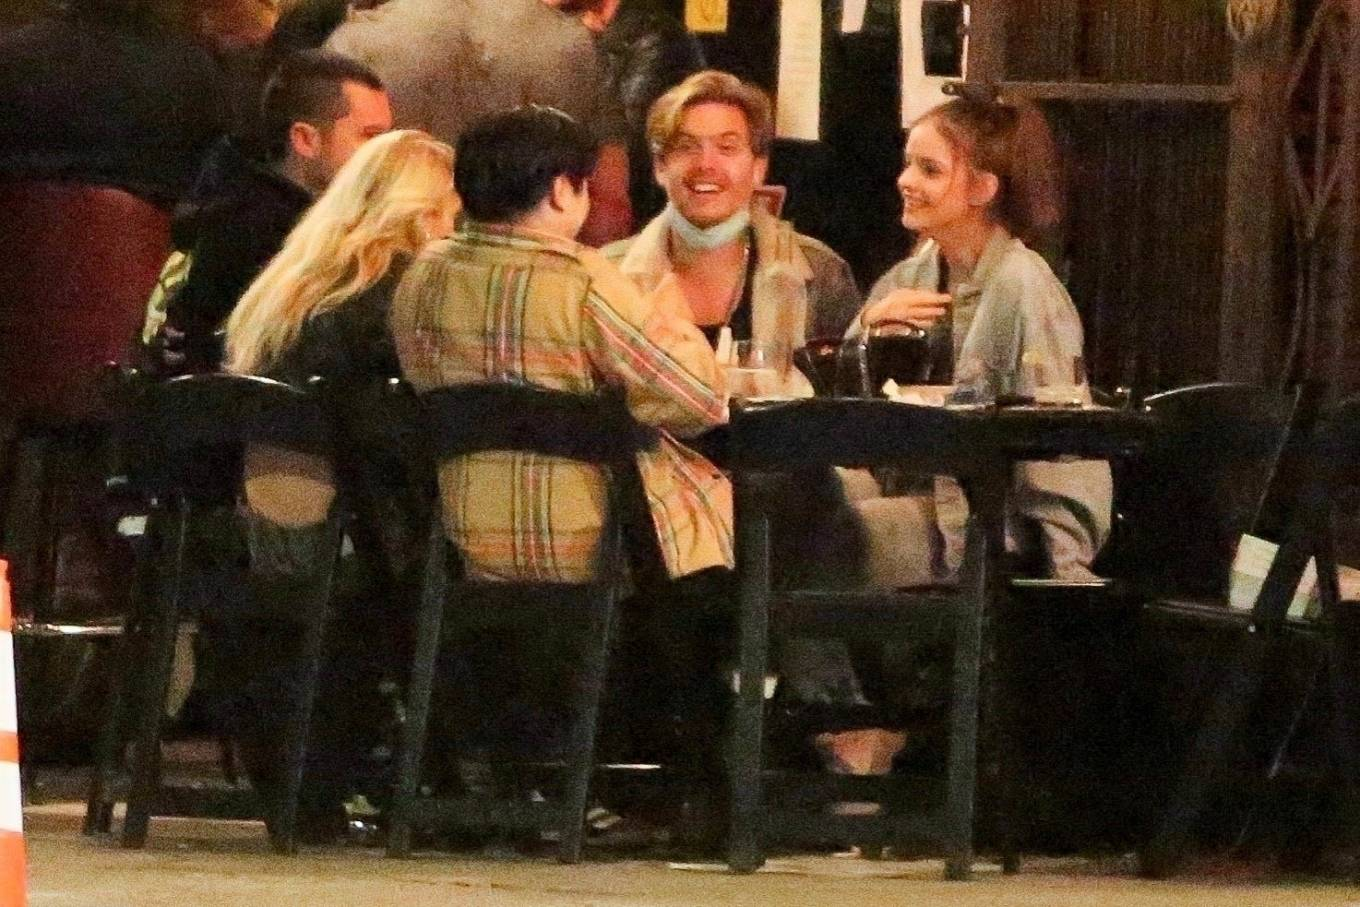 Barbara Palvin 2020 : Dylan Sprouse and Barbara Palvin with KJ Apa and Stella Maxwell – Night out in Silverlake -11